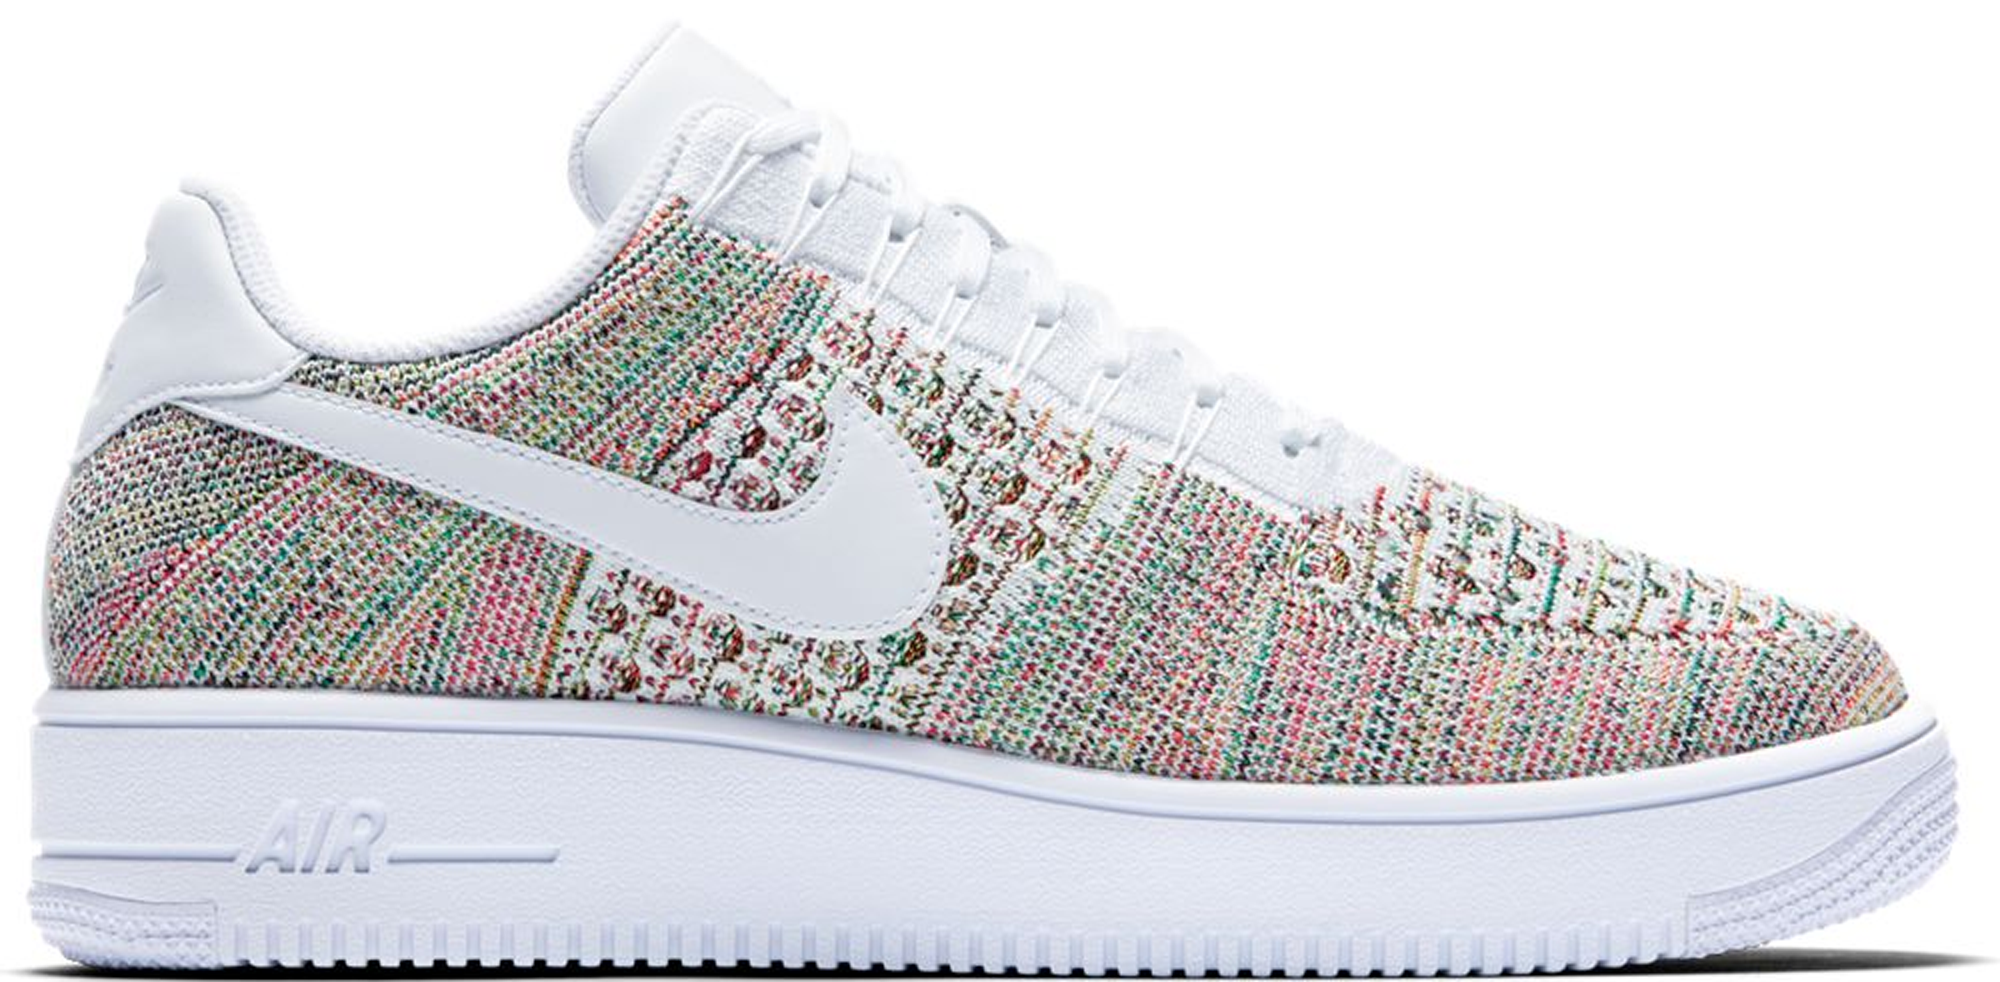 nike air force 1 flyknit release date